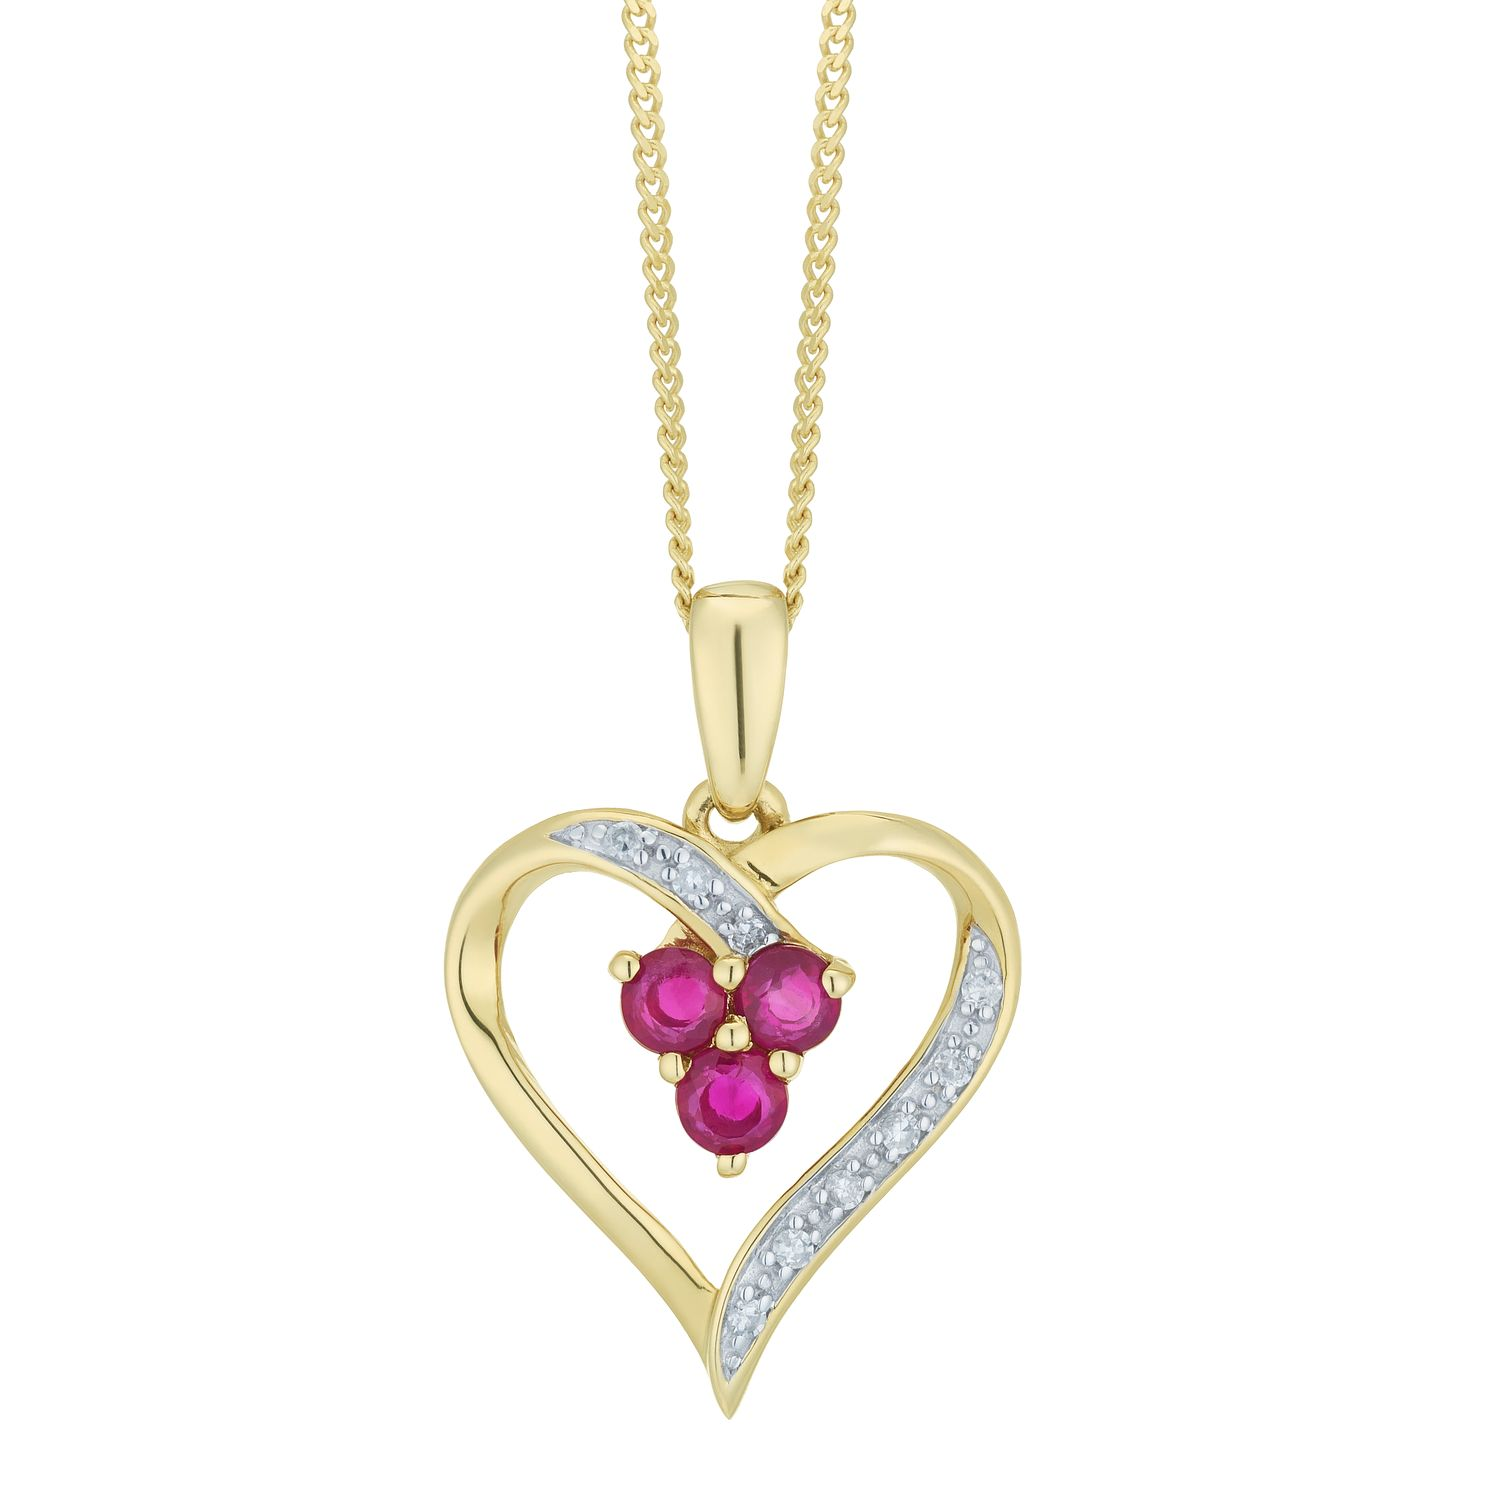 9ct Yellow Gold Diamond & Ruby Heart Pendant - Product number 6425119